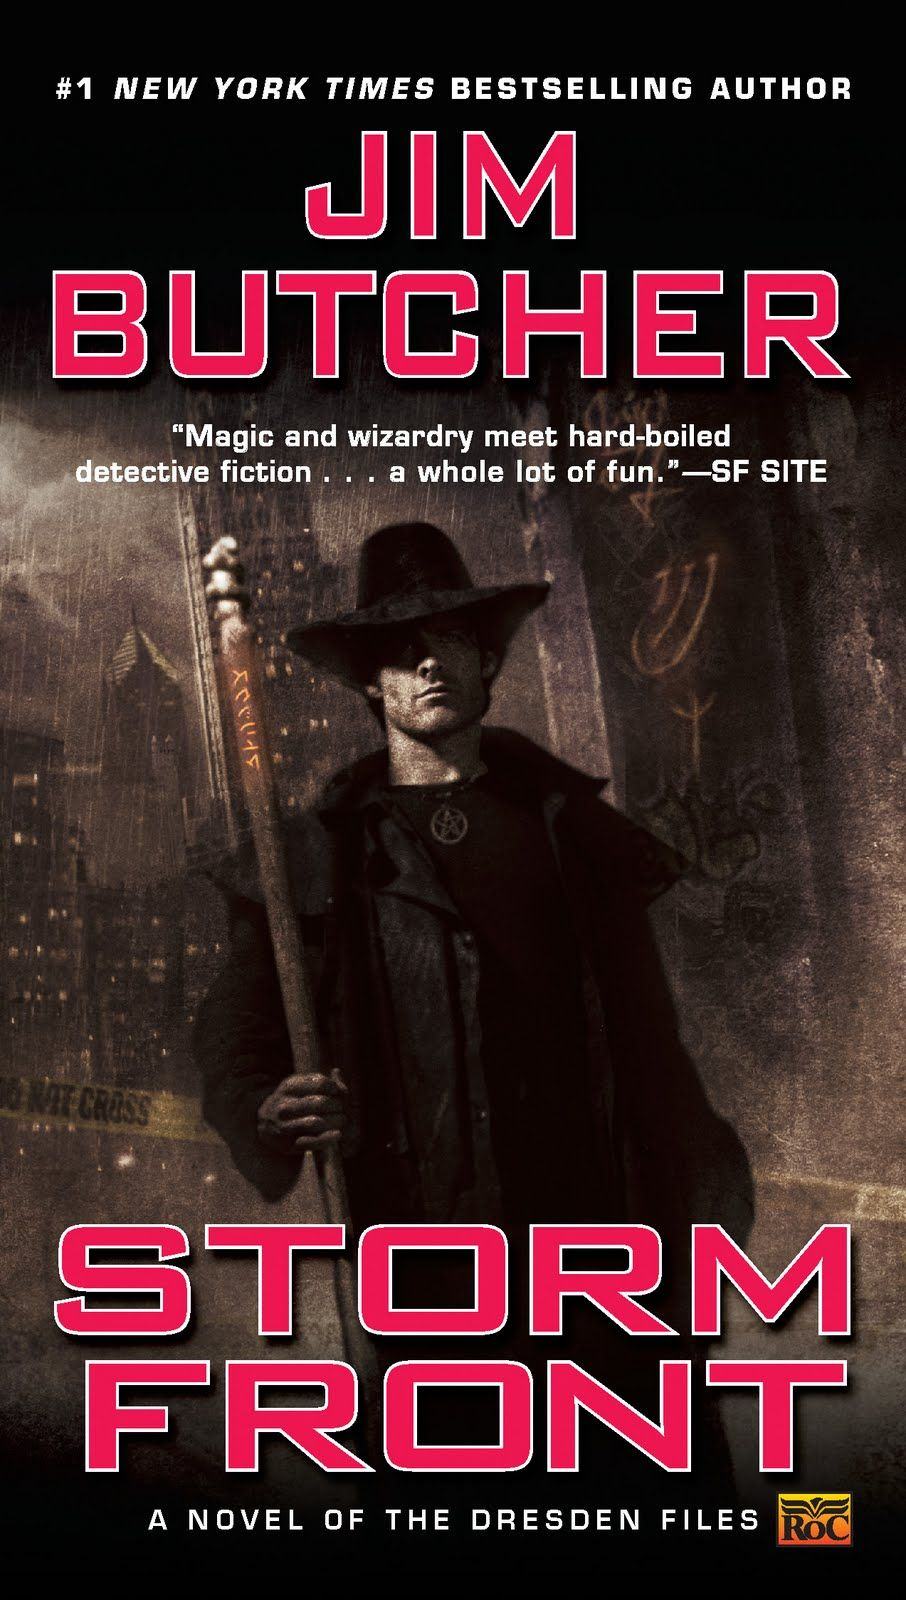 The first book in one of my favorite series of novels.  